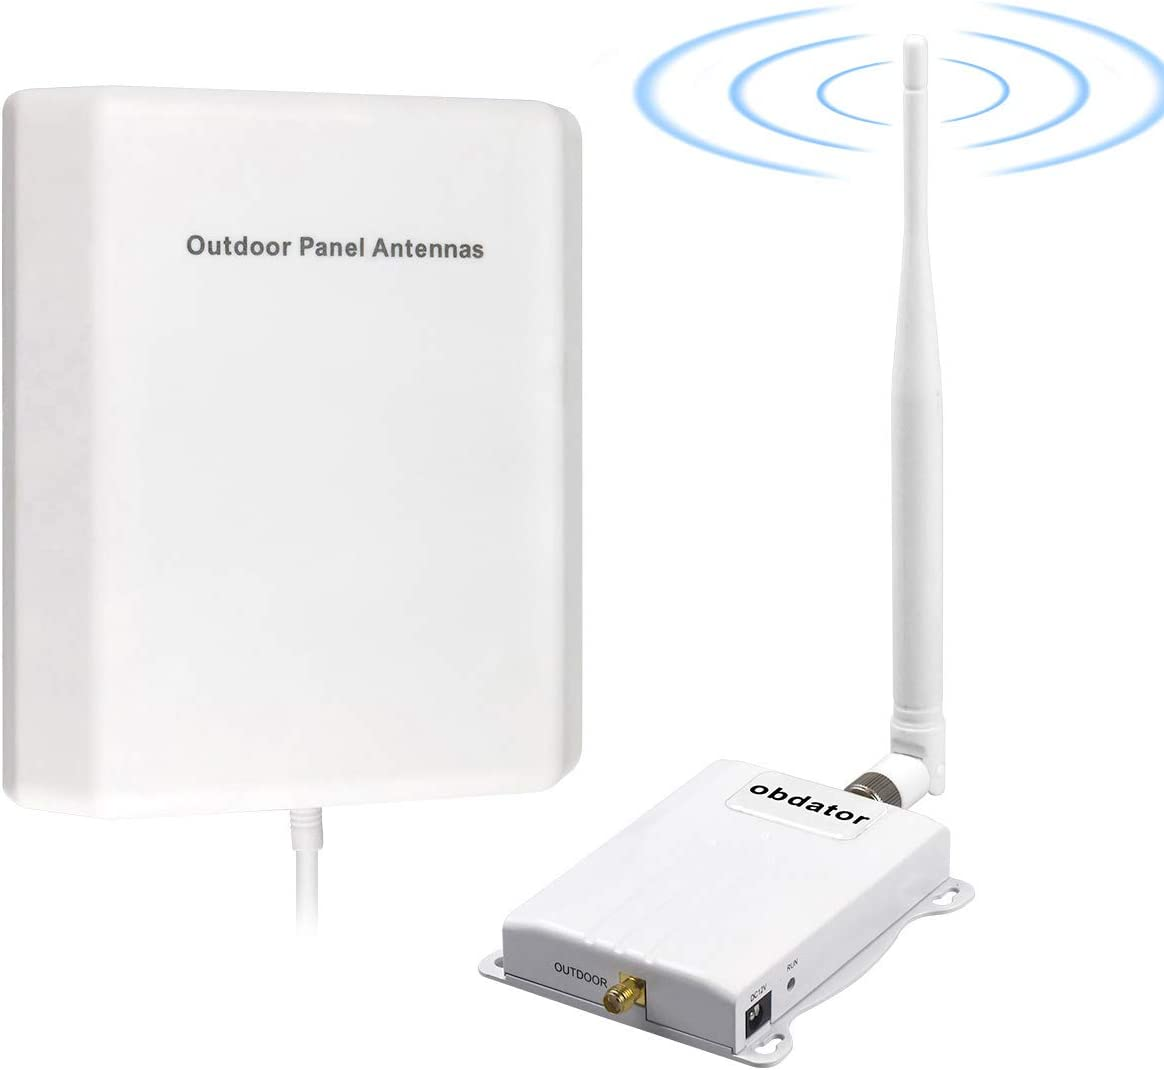 AT&T T-Mobile Signal Booster 4G LTE Cell Phone Signal Booster FDD 700Mhz Band 12/17 Cell Phone Booster ATT Cell Phone Signal Amplifier for Home up to 2,000 Sq Ft